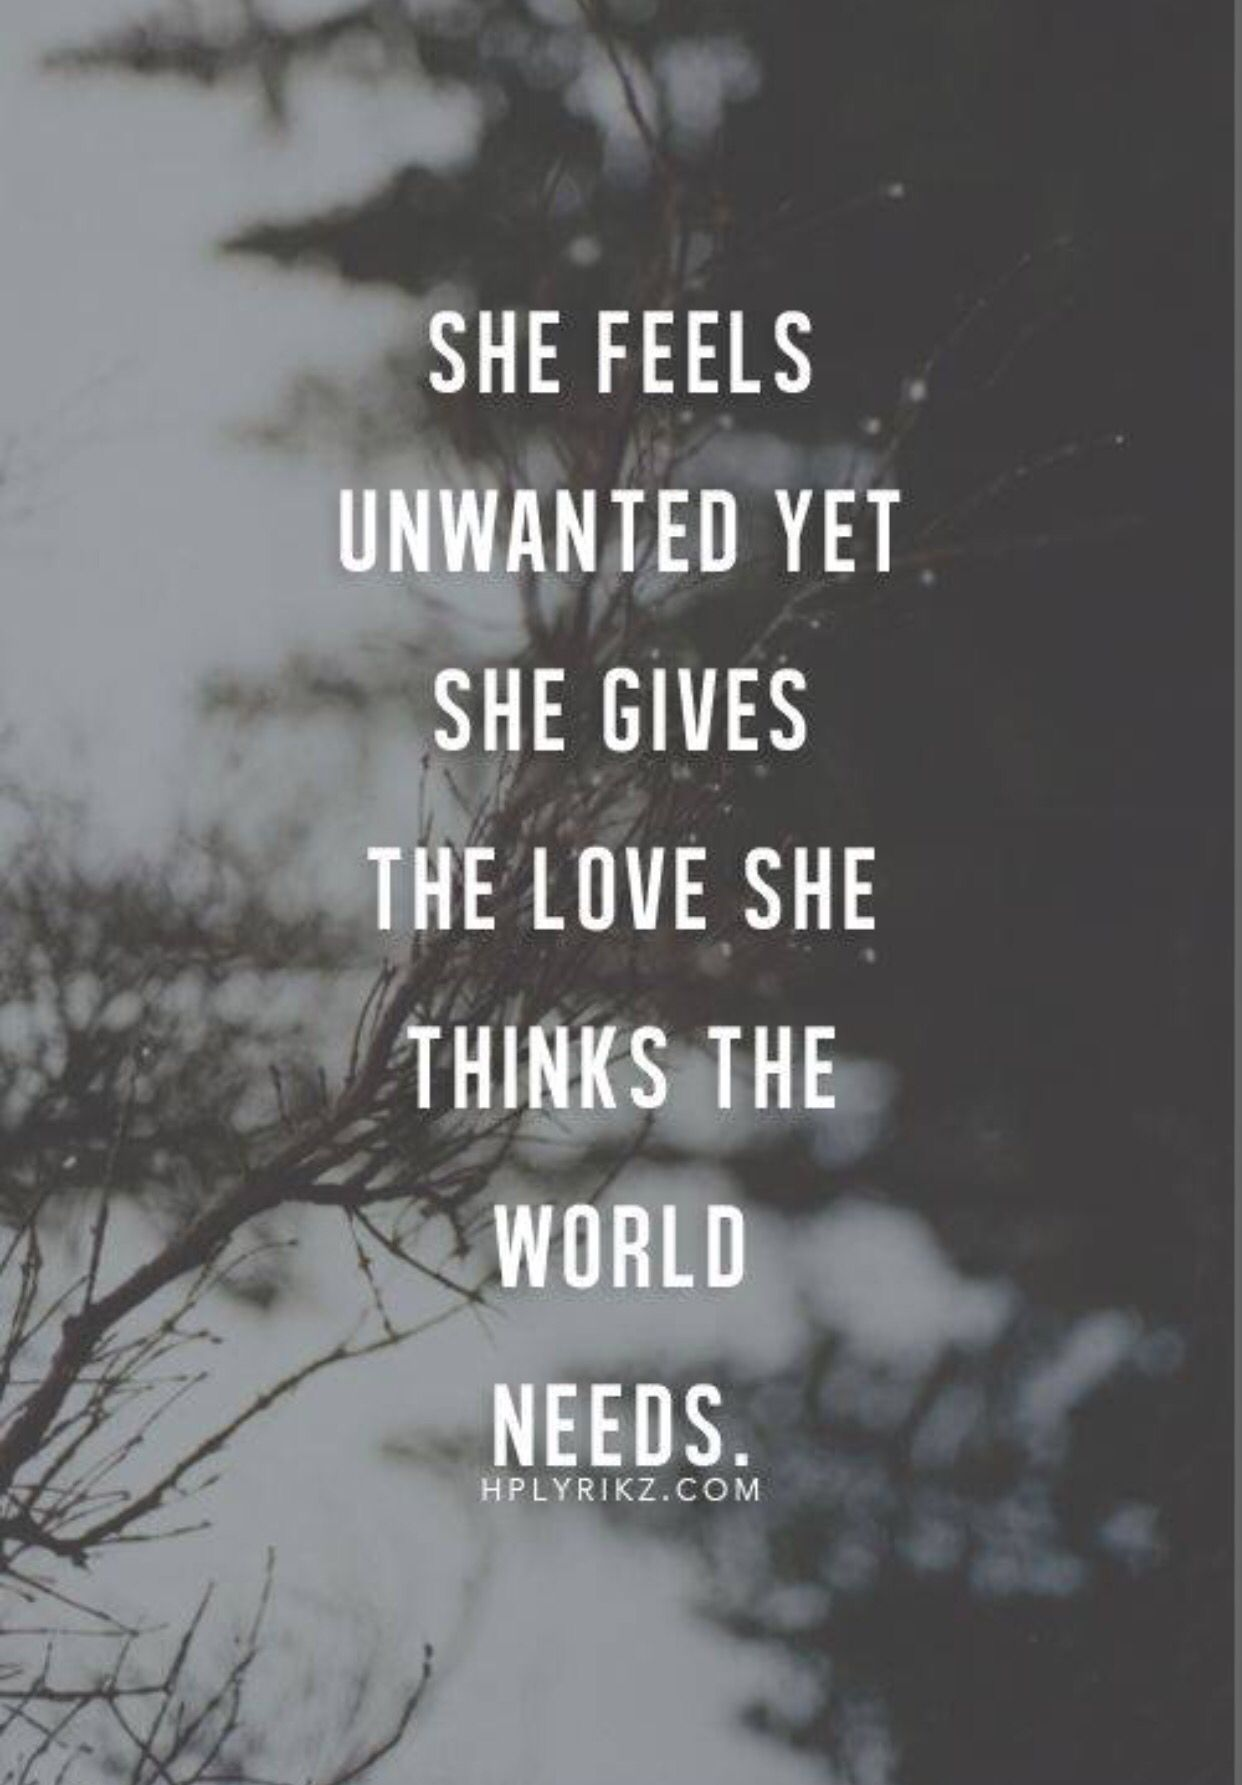 Selfless Love Quotes She Feels Unwanted Yet She Gives The Love She Thinks The World